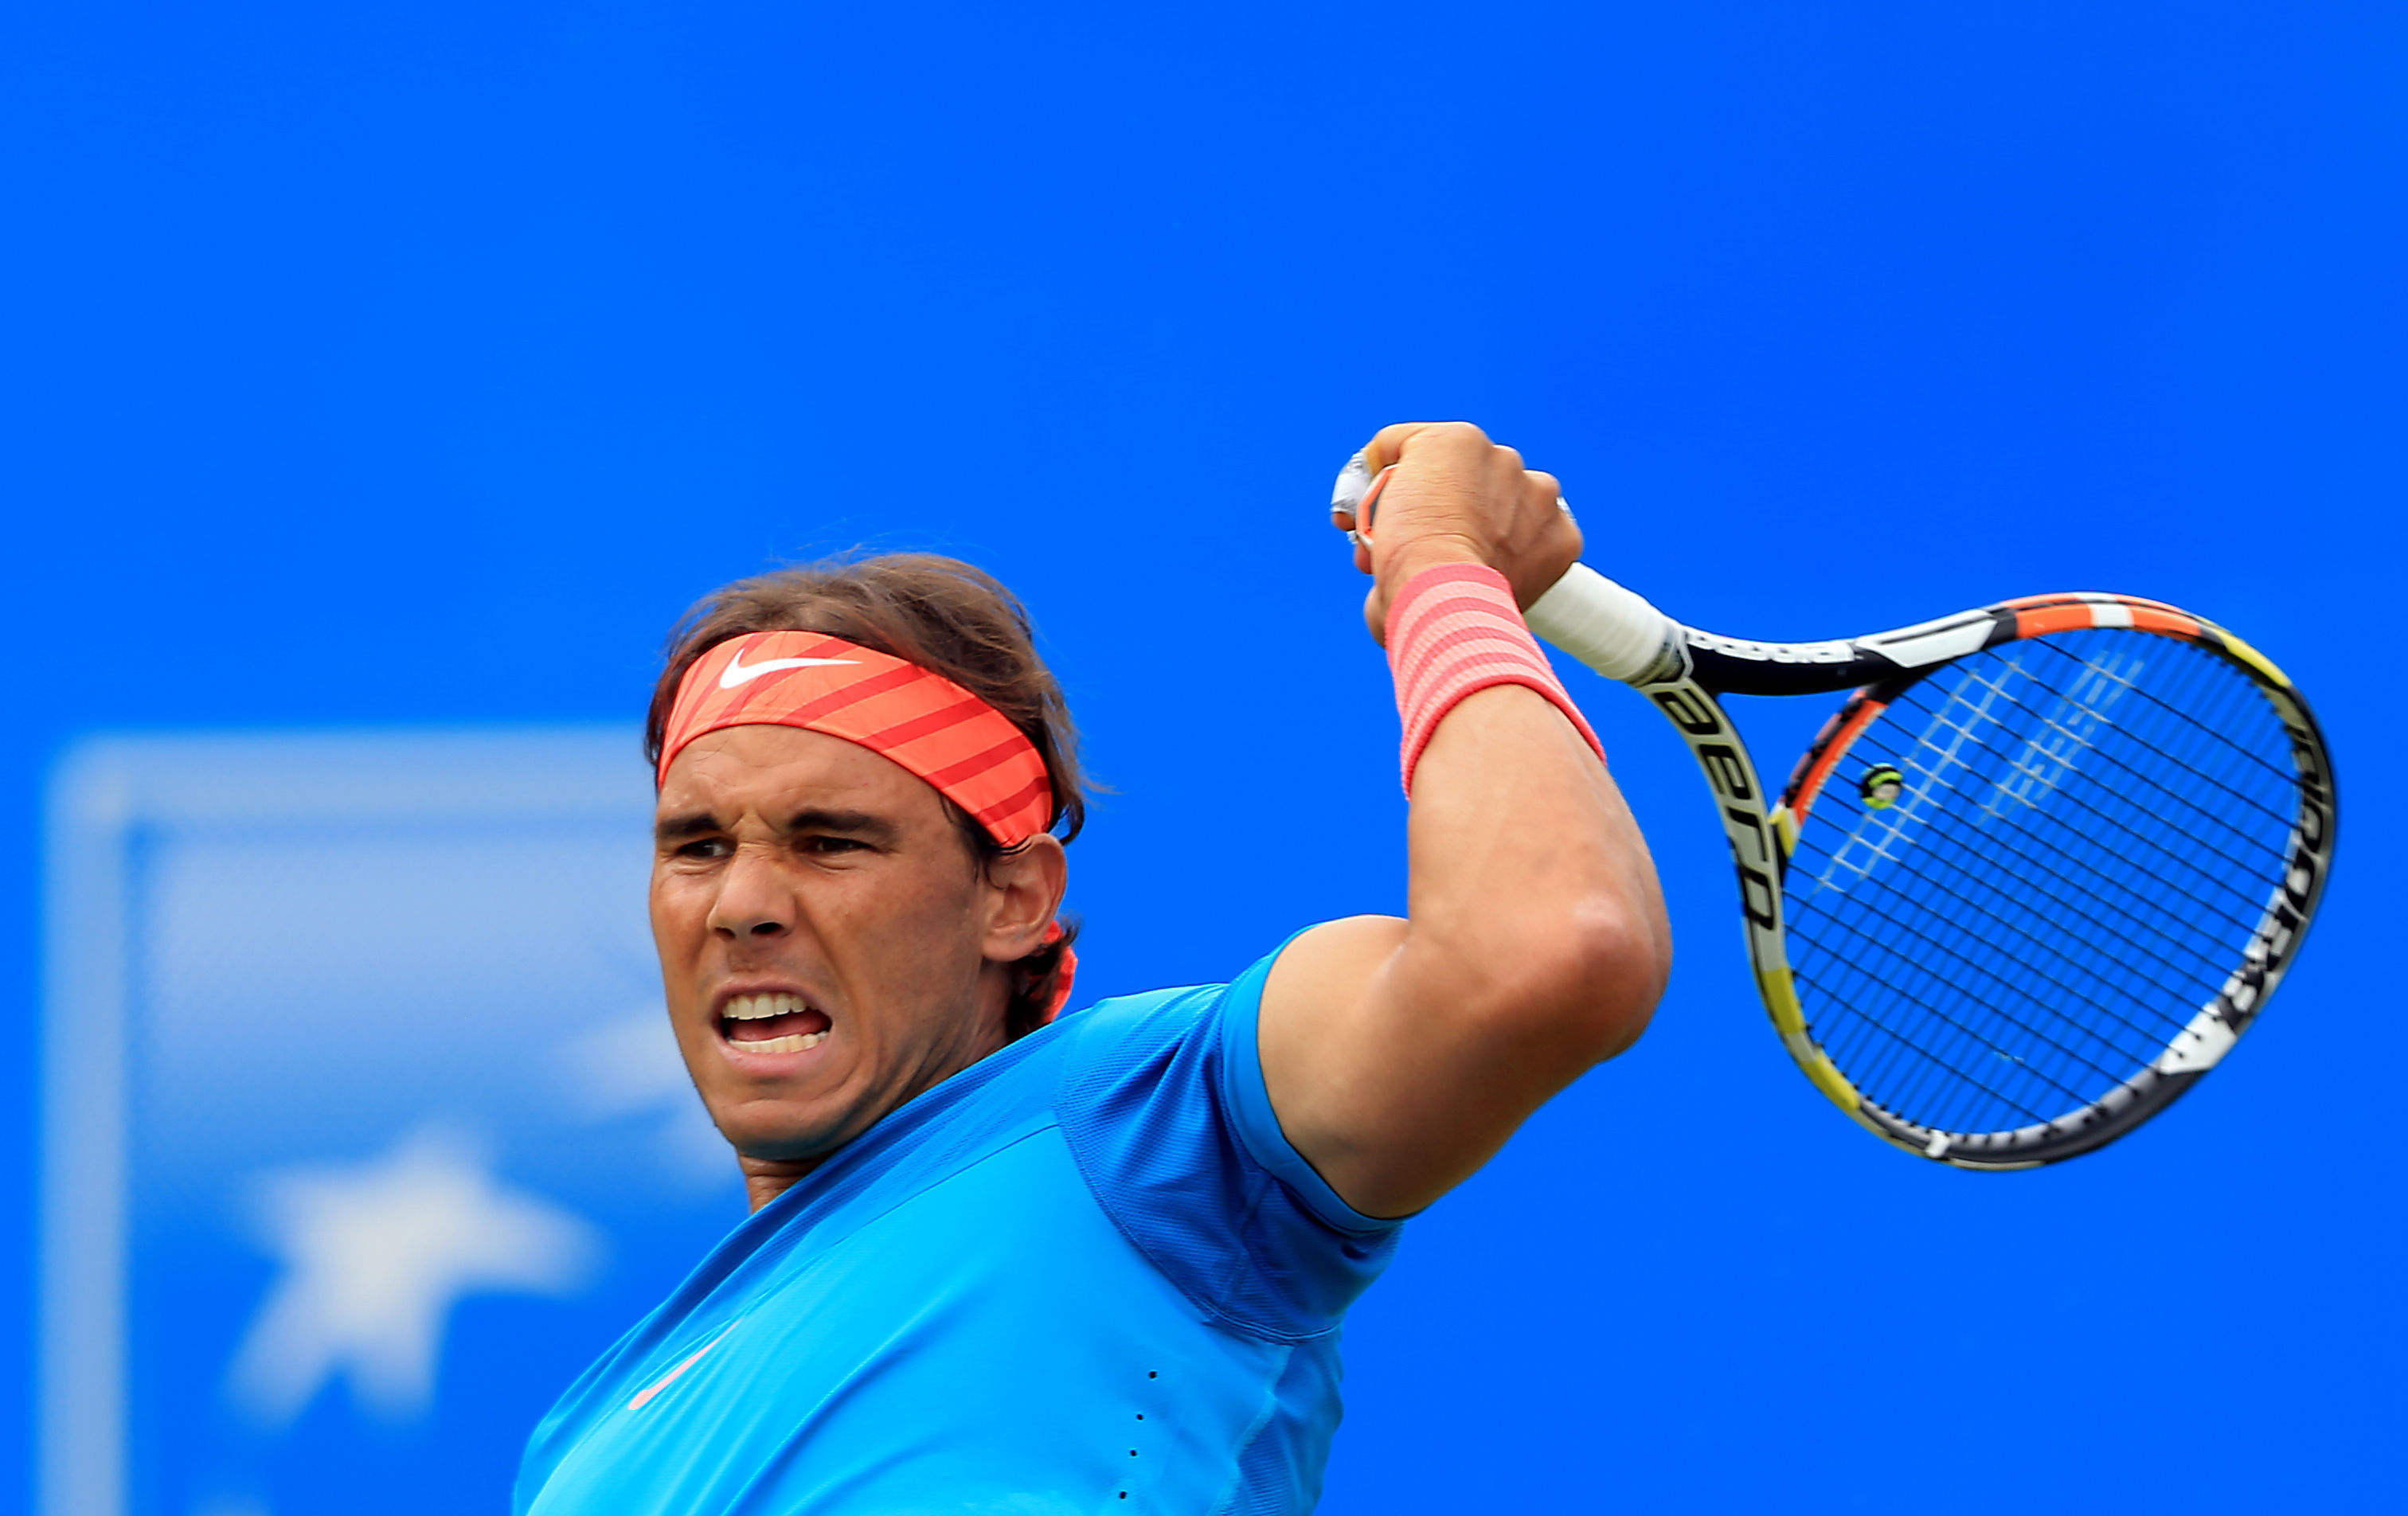 Rafa Nadal won't be in New York.